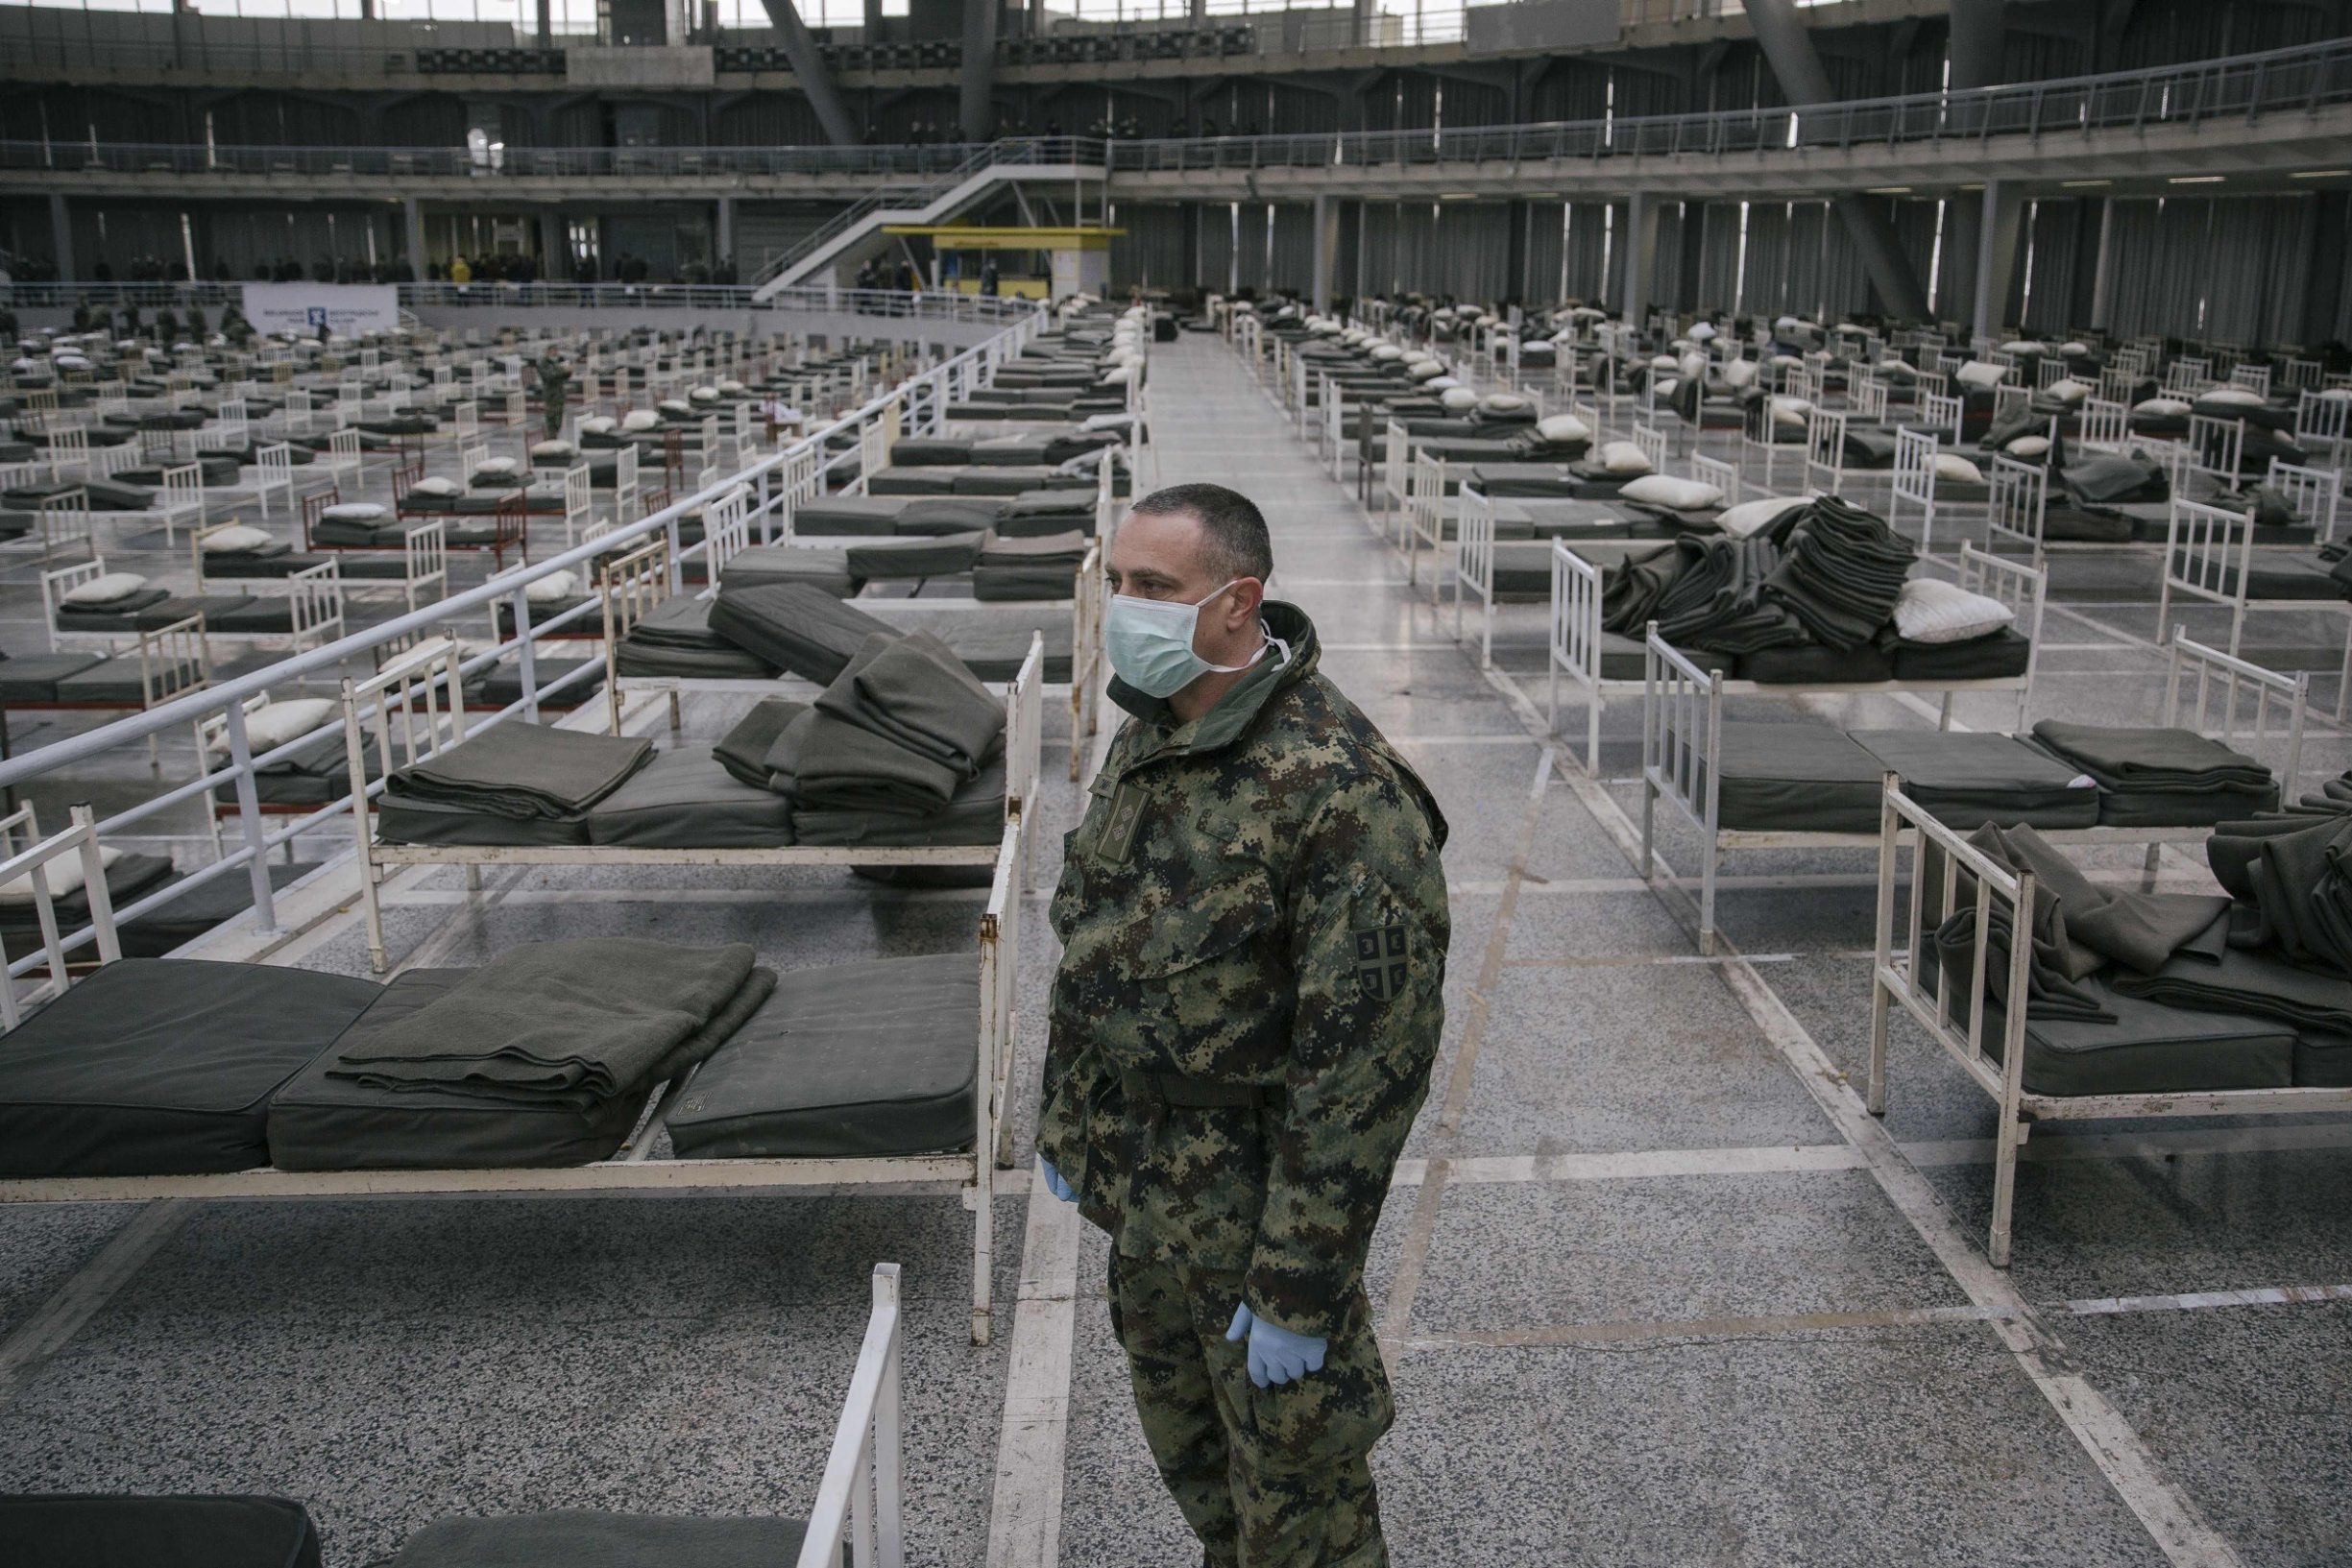 TOPSHOT - A Serbian military personnel wearing a protective mask stands amongst beds set up inside a hall of the Belgrade Fair to accommodate people who suffer mild symptoms of coronavirus disease (COVID-19) on March 24, 2020. - More than 200,000 coronavirus cases have been declared in Europe, according to an AFP tally on March 24, 2020. (Photo by Vladimir Zivojinovic / AFP)